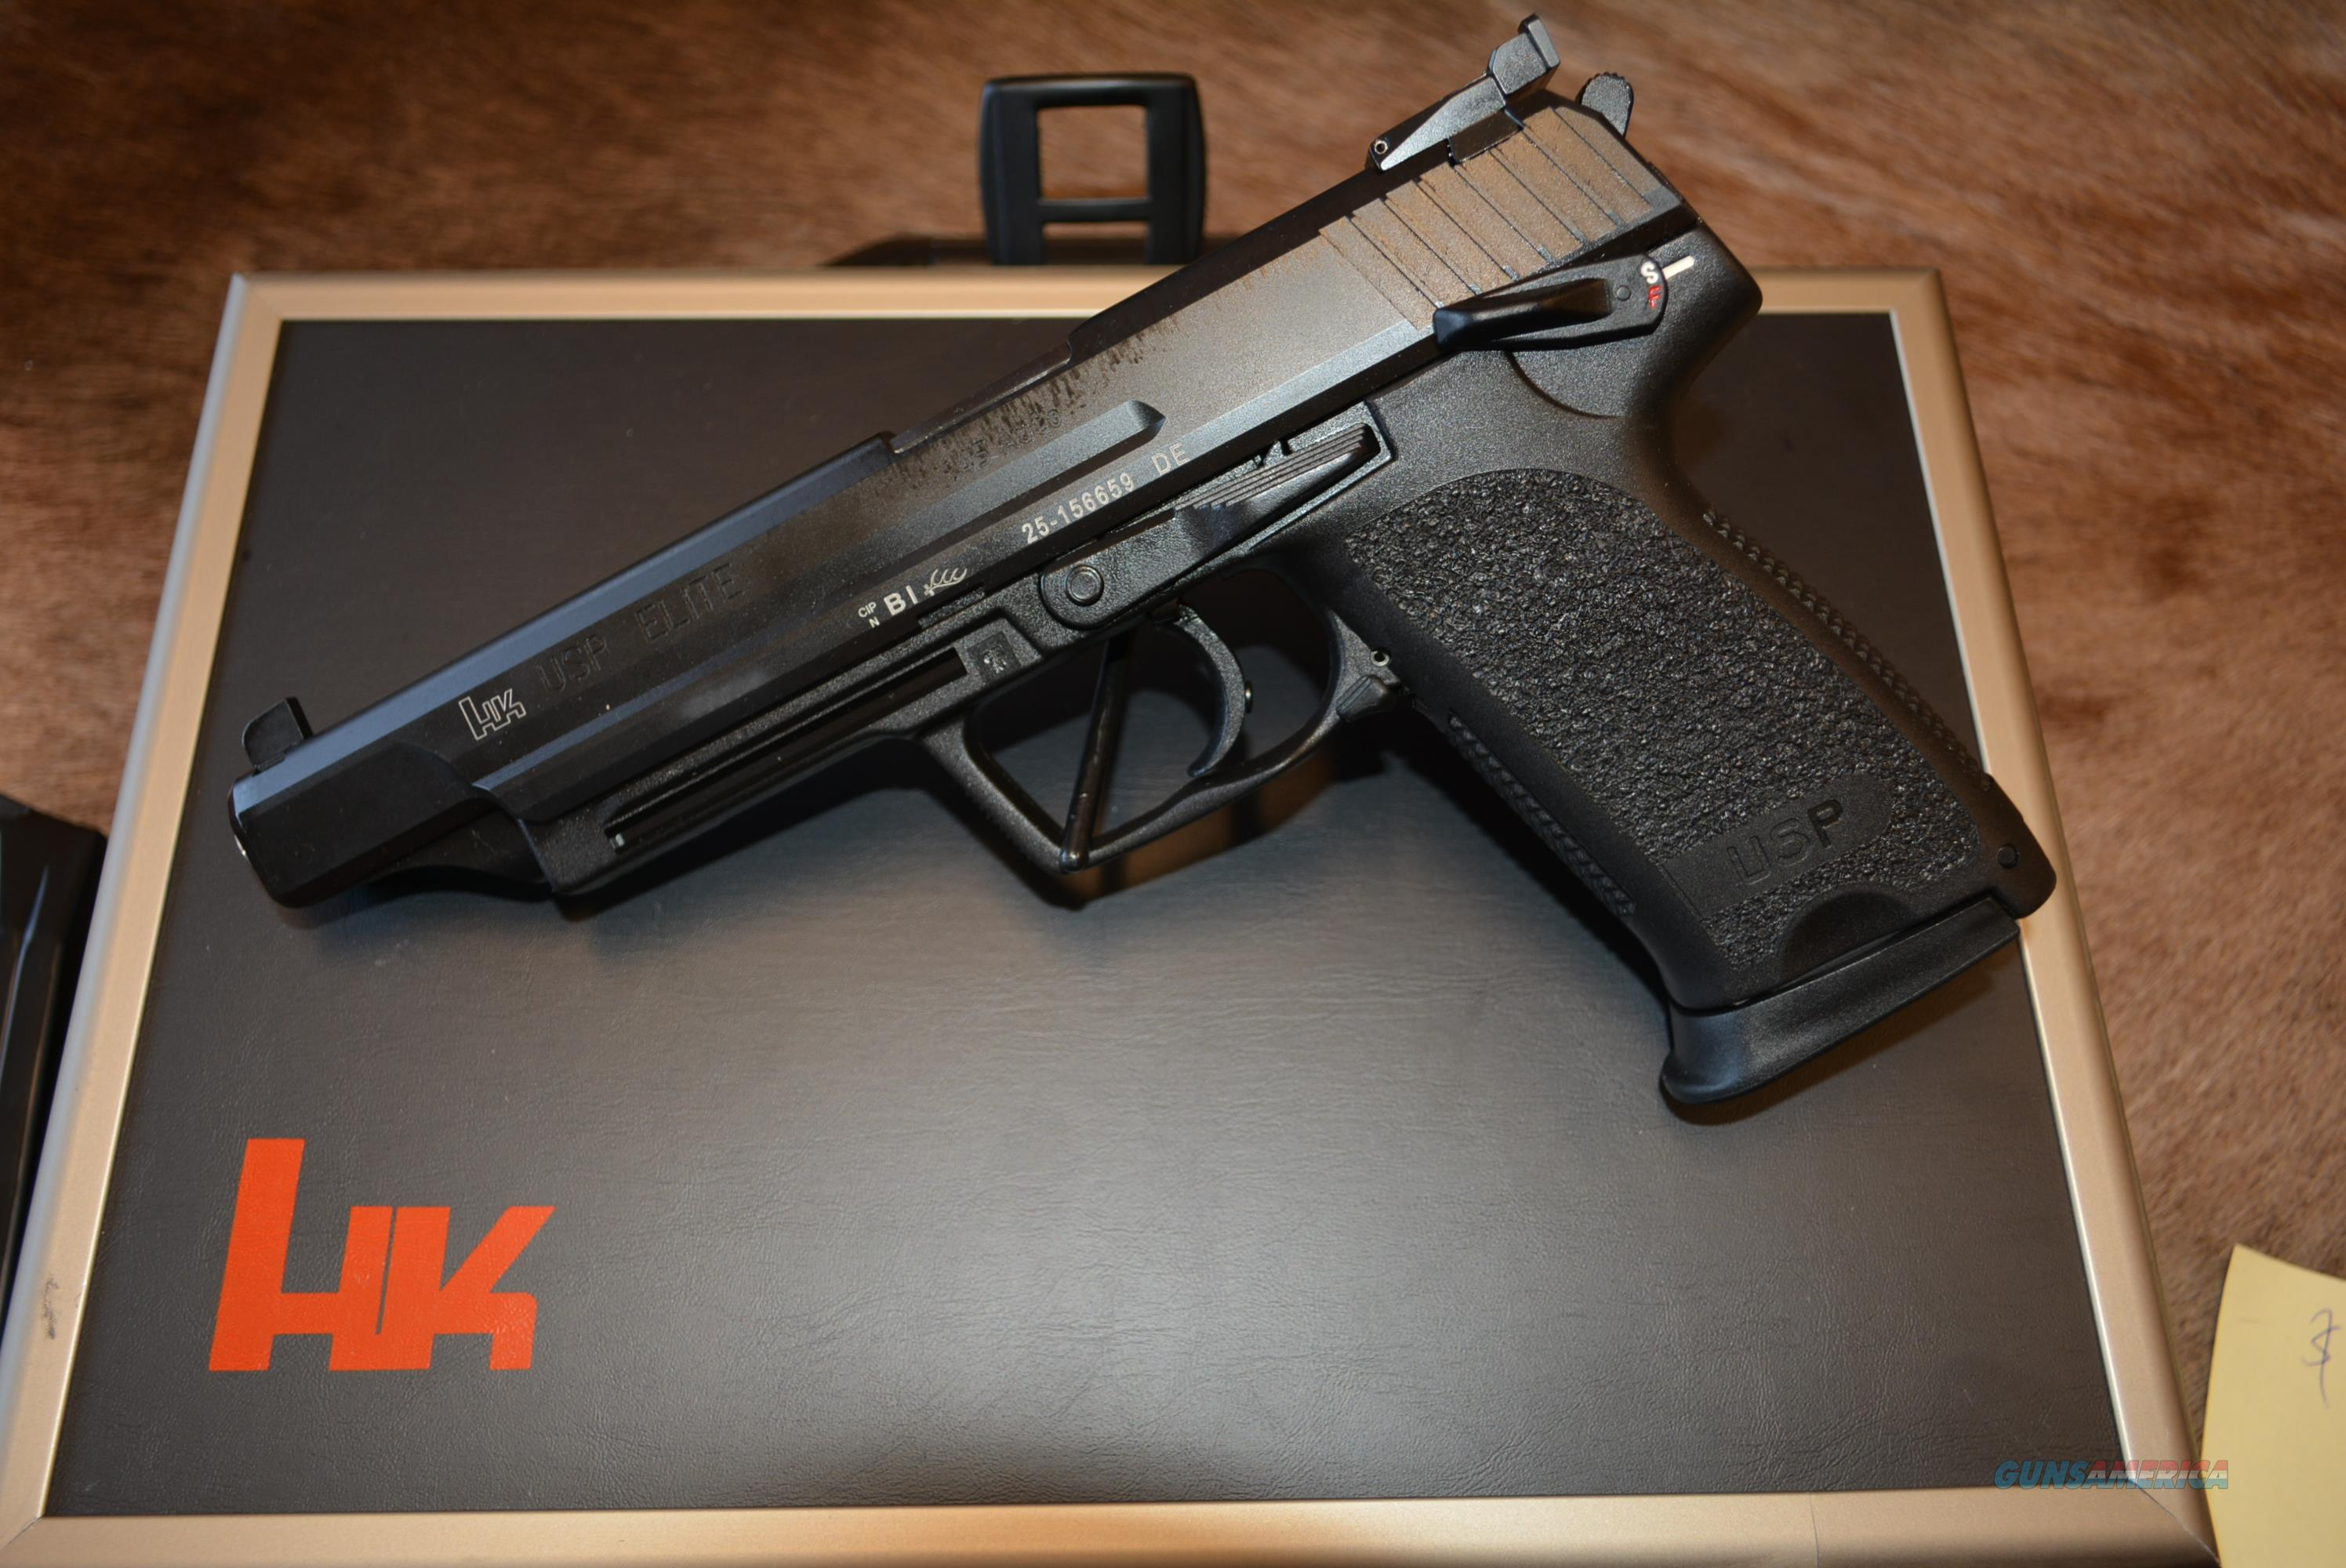 HK USP Elite 45ACP - NON US Cataloged Item!  Guns > Pistols > Heckler & Koch Pistols > Polymer Frame